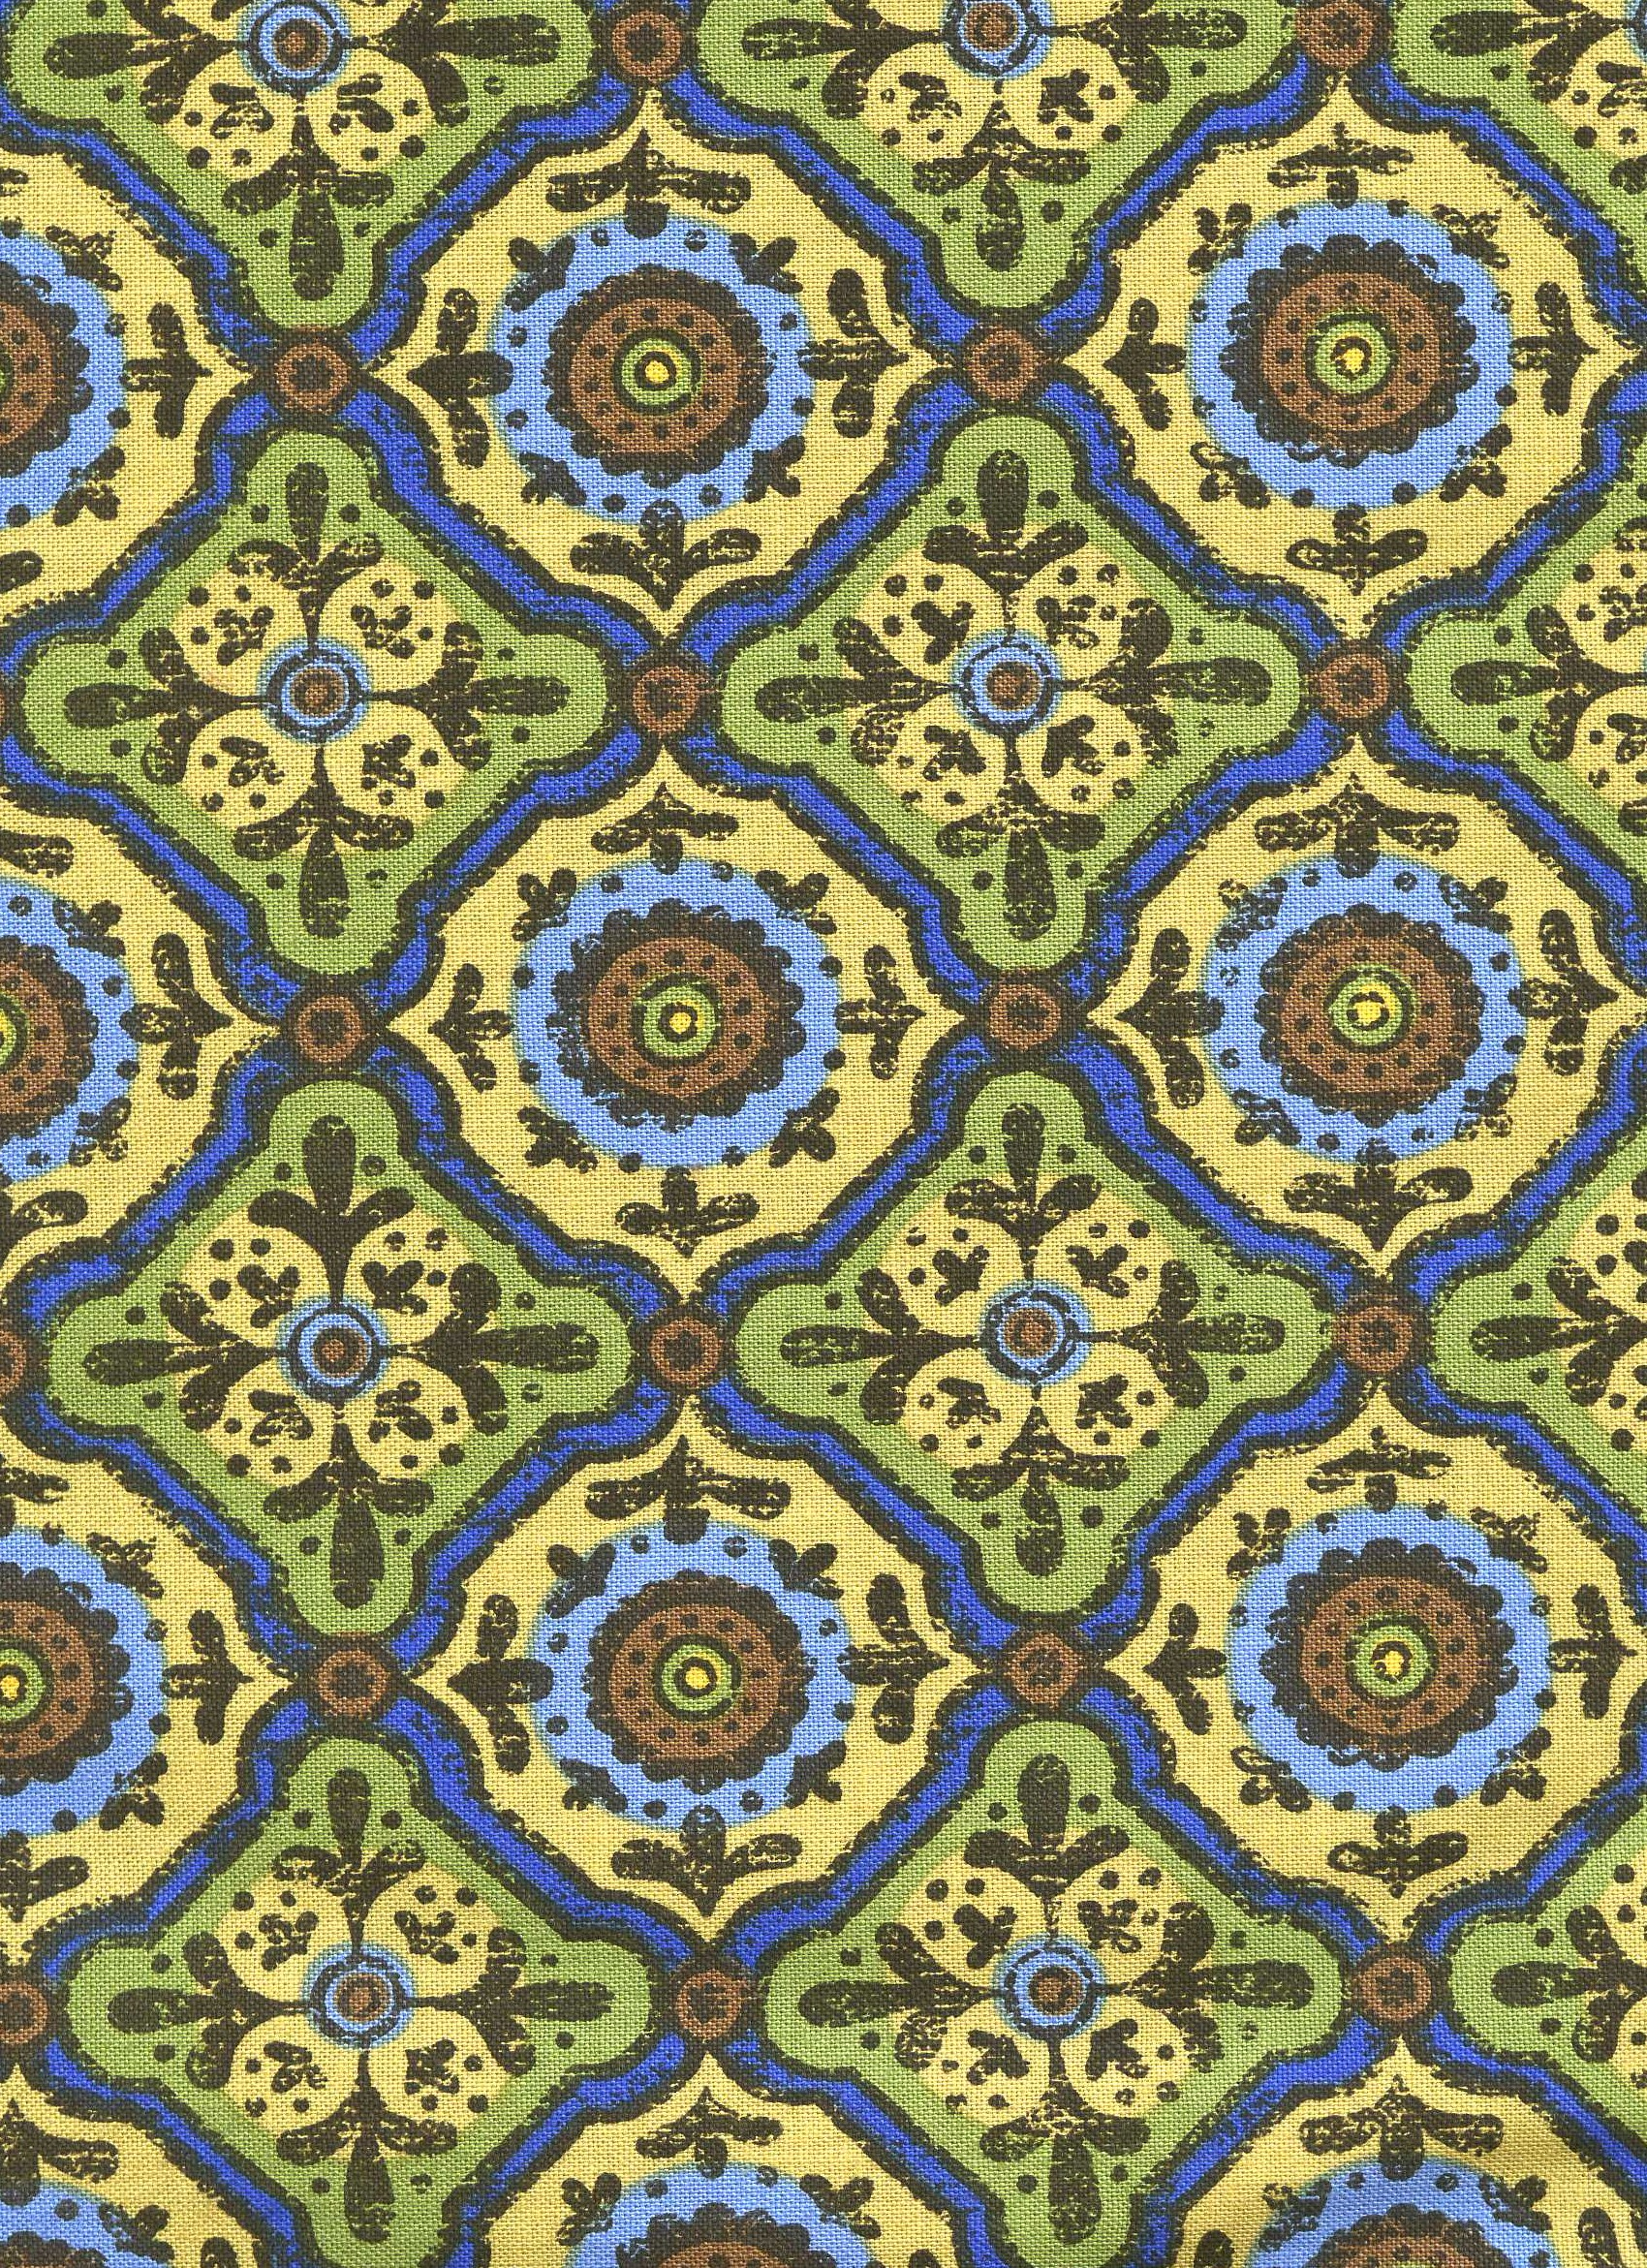 Yellow, Blue and Green Medallion